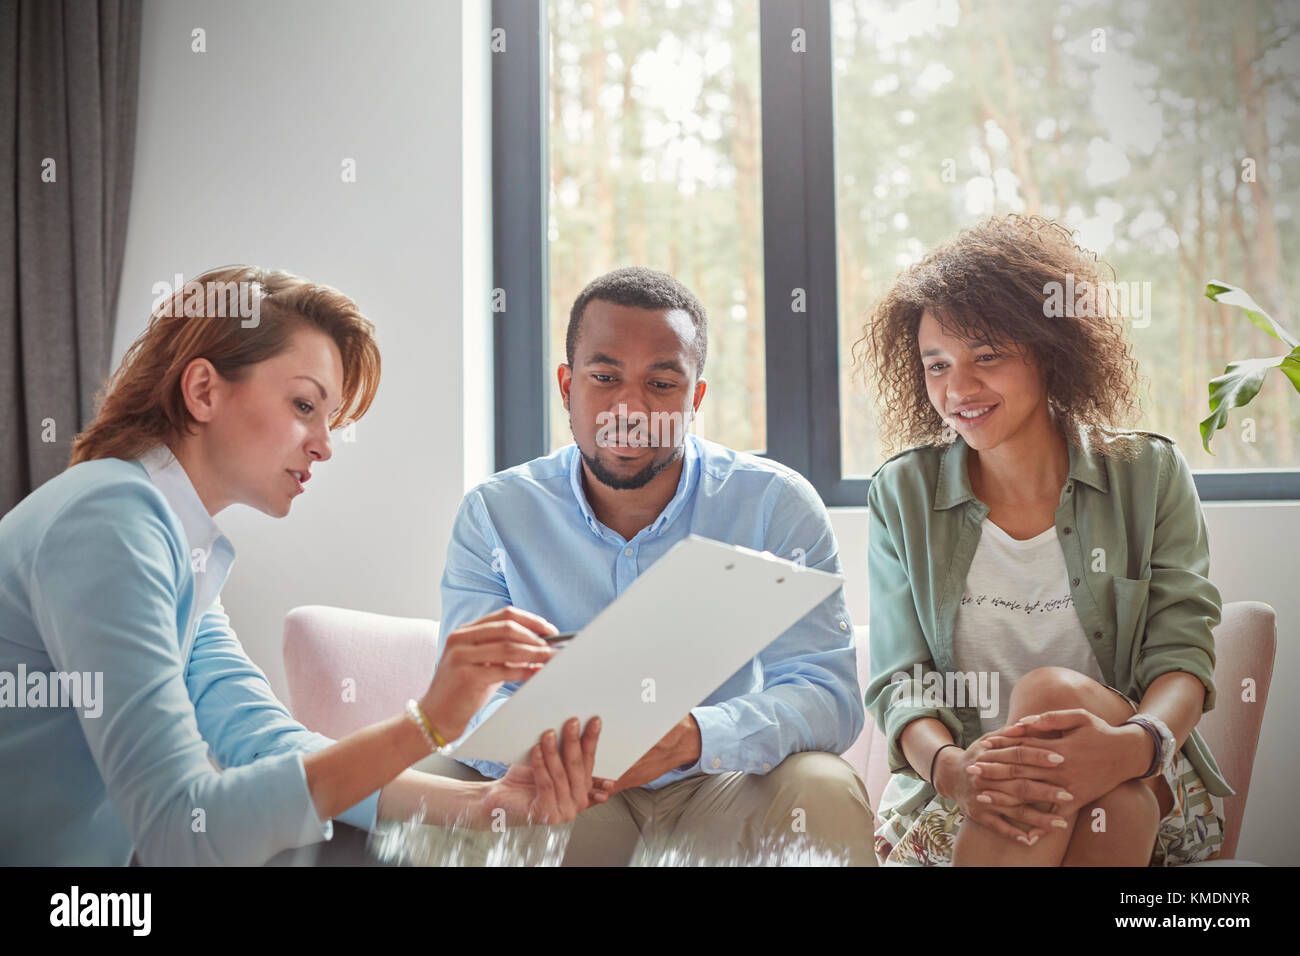 Female Therapist With Clipboard Talking To Couple In Couples Therapy